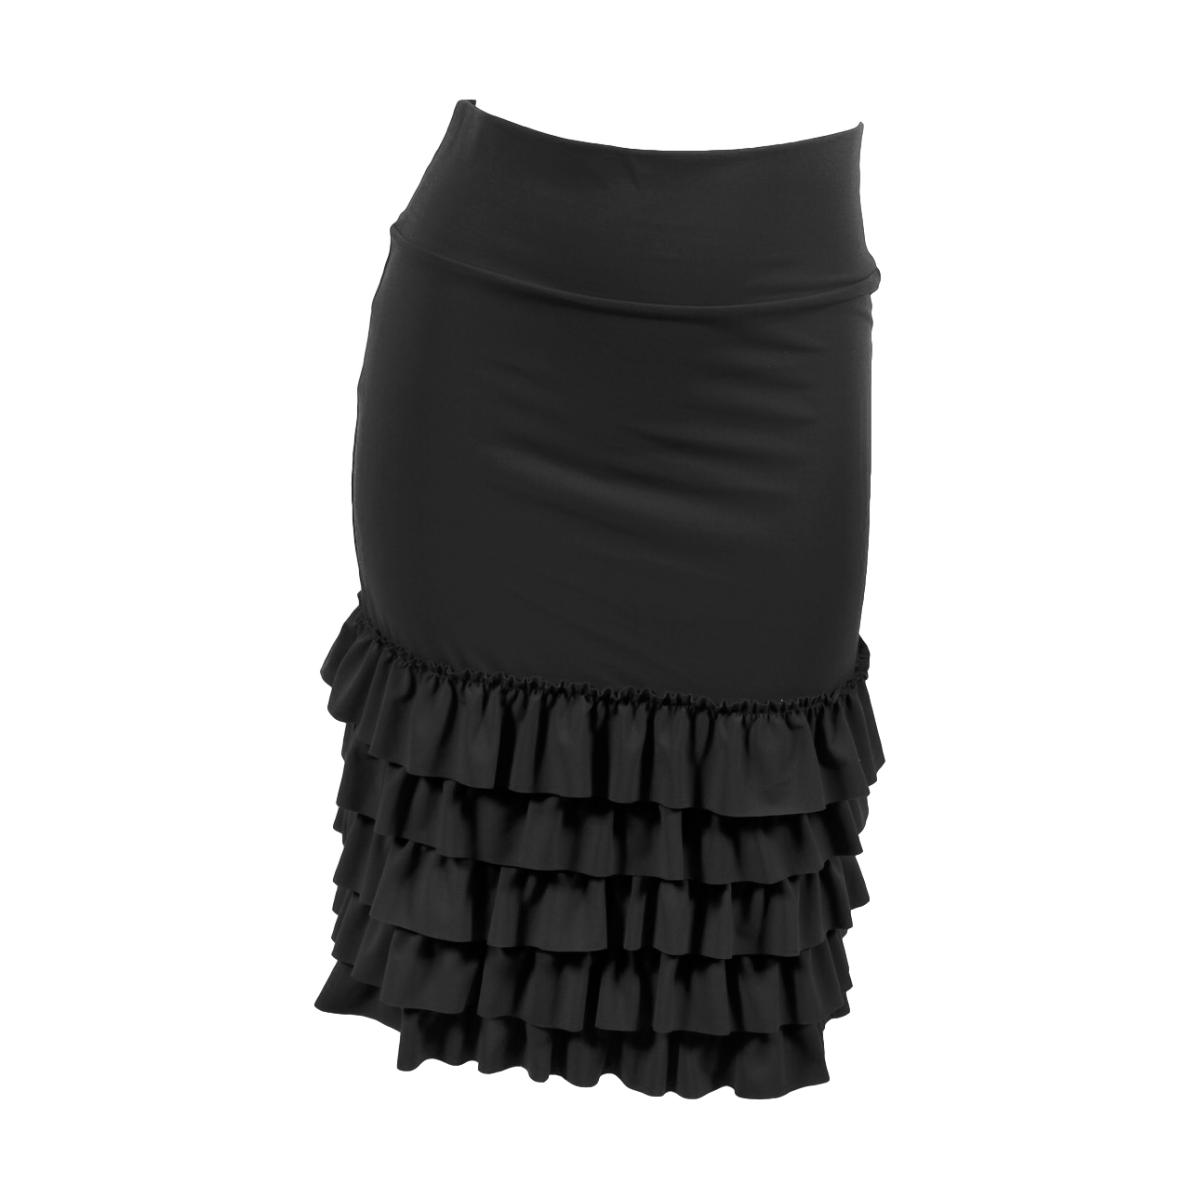 Bring on the Frill Layering Skirt | black, skirt extenders, Peekaboo Chic | Modest Layering Apparel for women